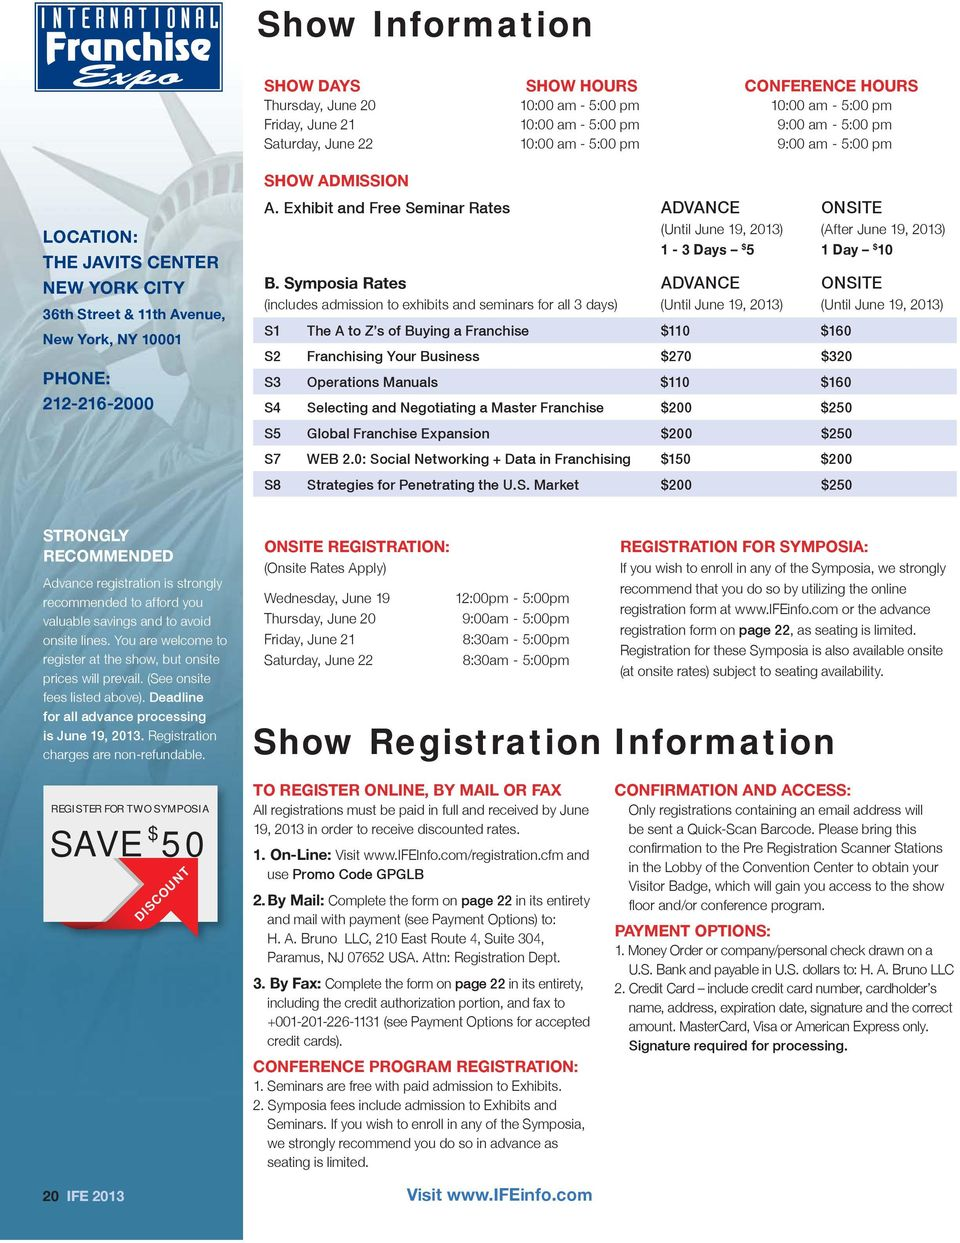 Symposia Rates ADVANCE ONSITE (includes admission to exhibits and seminars for all 3 days) (Until June 19, 2013) (Until June 19, 2013) S1 The A to Z s of Buying a Franchise $110 $160 S2 Franchising